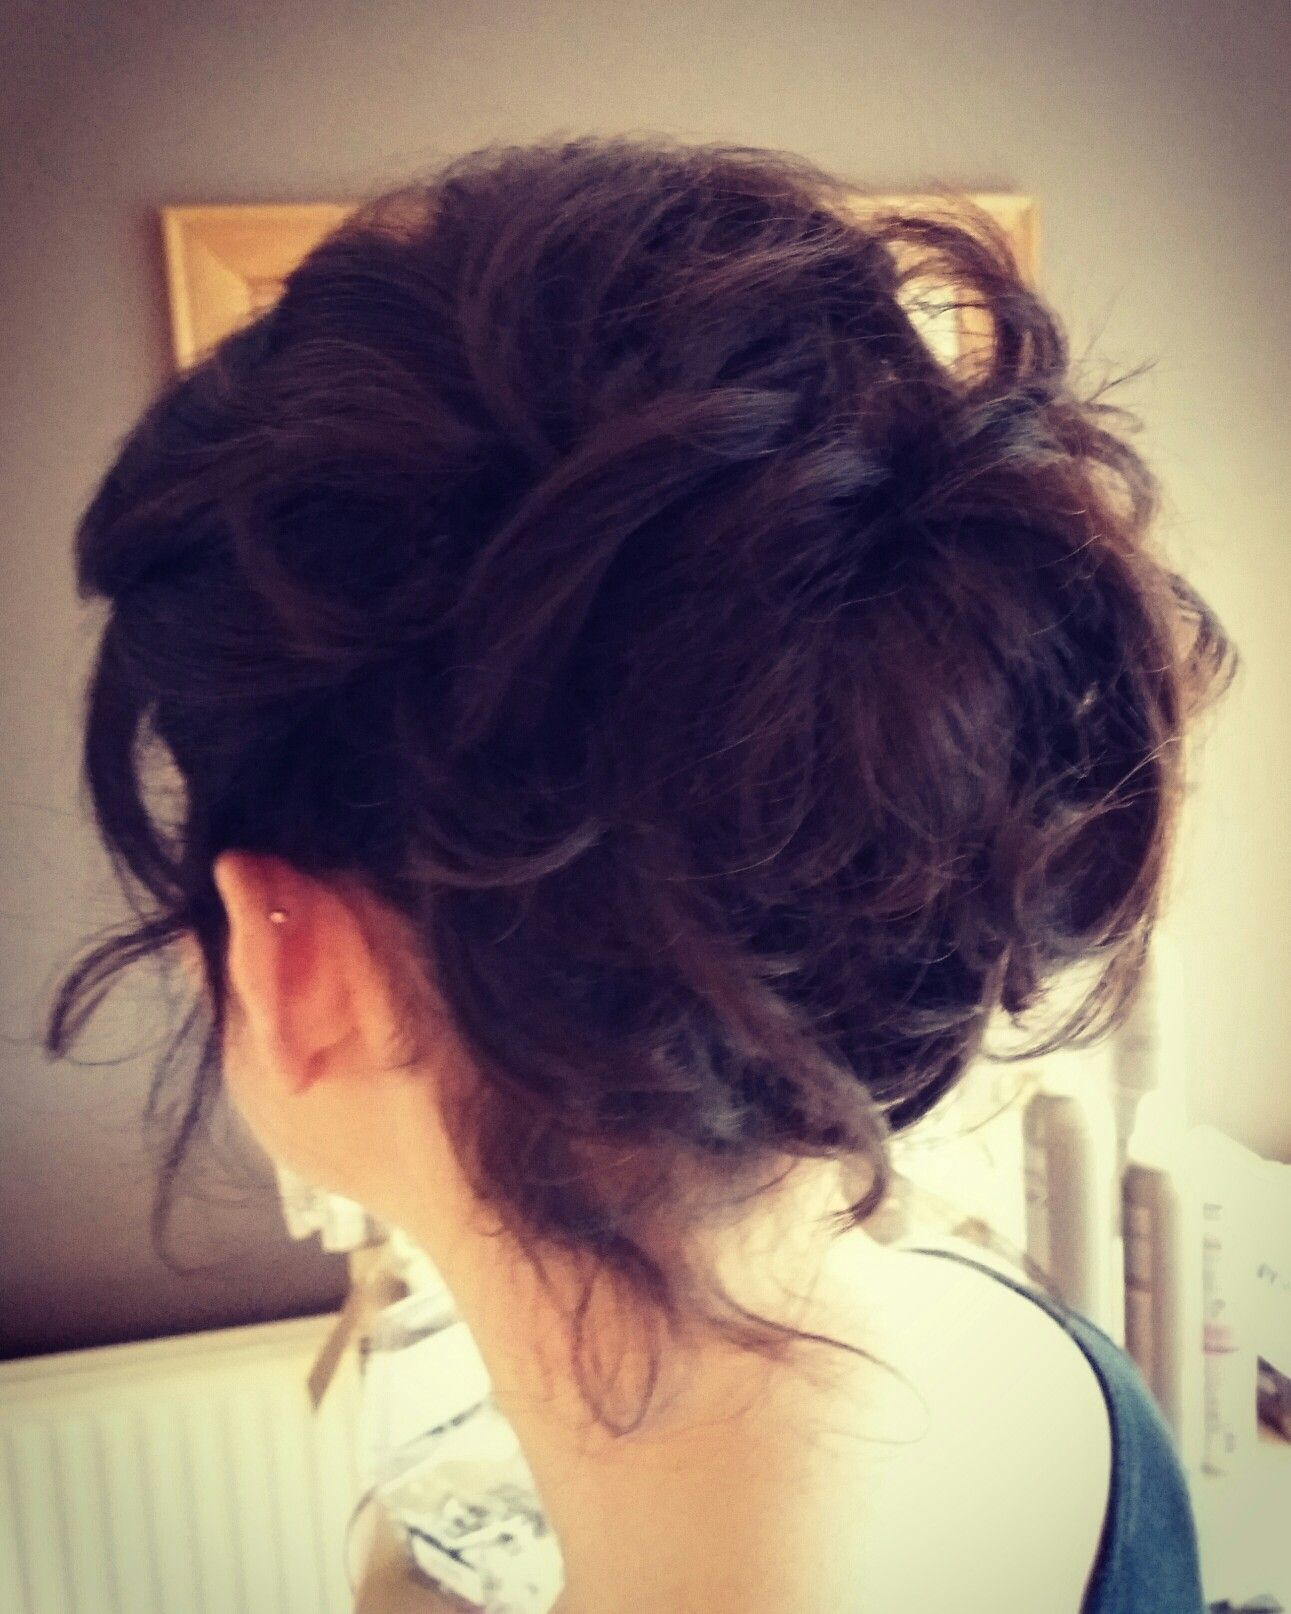 Simply beautiful. Hair up, romantic and gorgeous. Hair by charlottewaredesigns